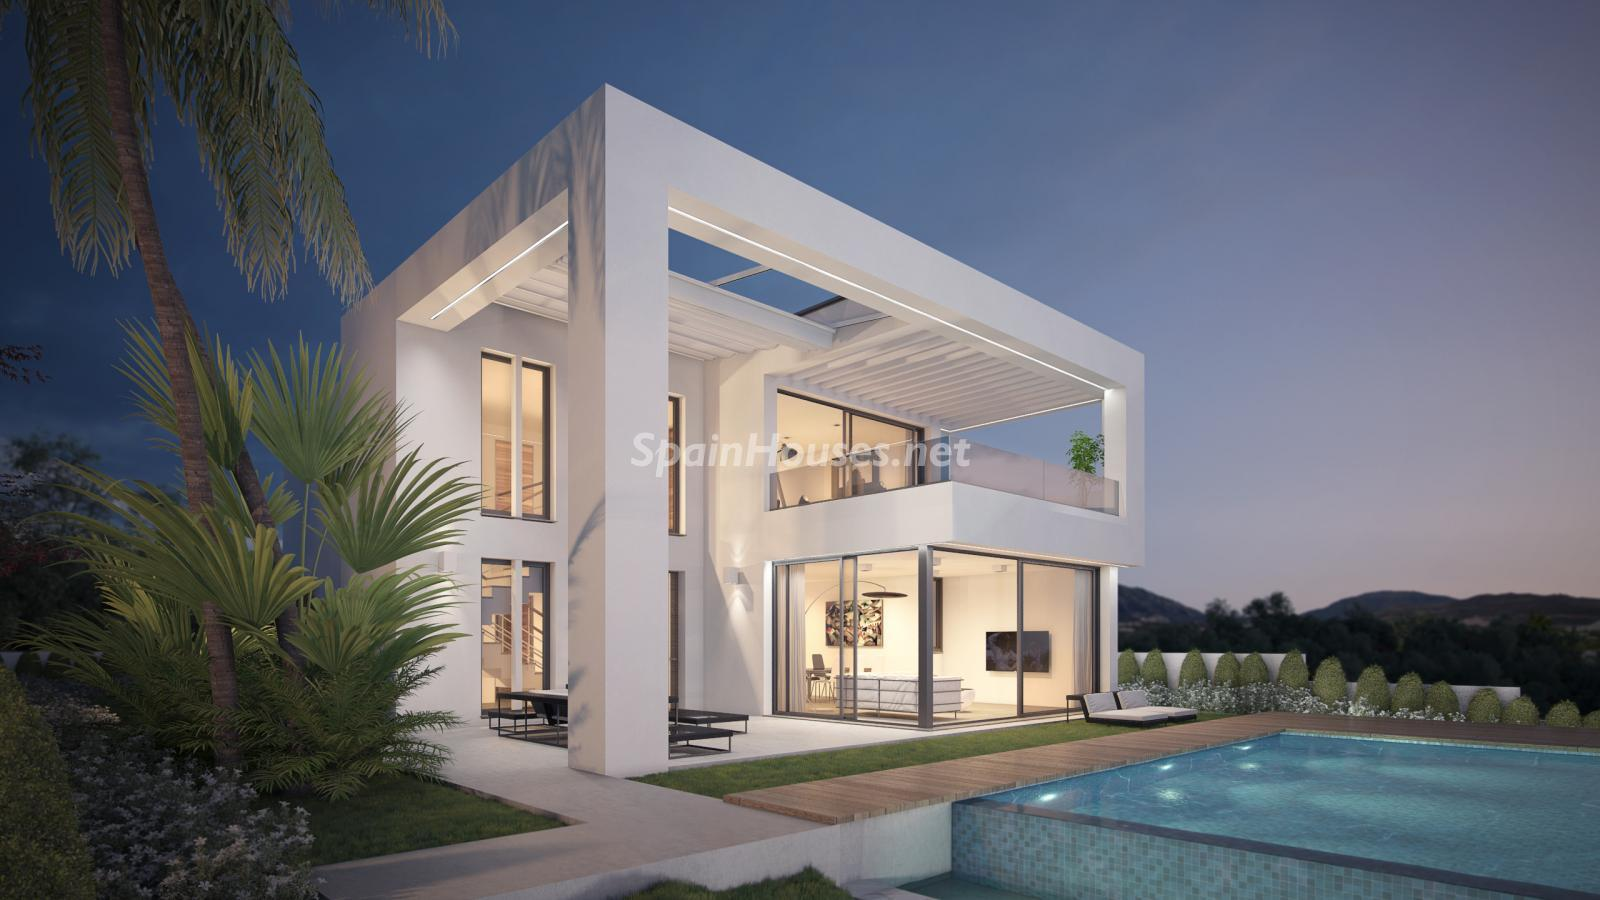 16. Buena Vista Hills - Buena Vista Hills, 26 Modern Villas with Panoramic Sea Views in Mijas, Costa del Sol